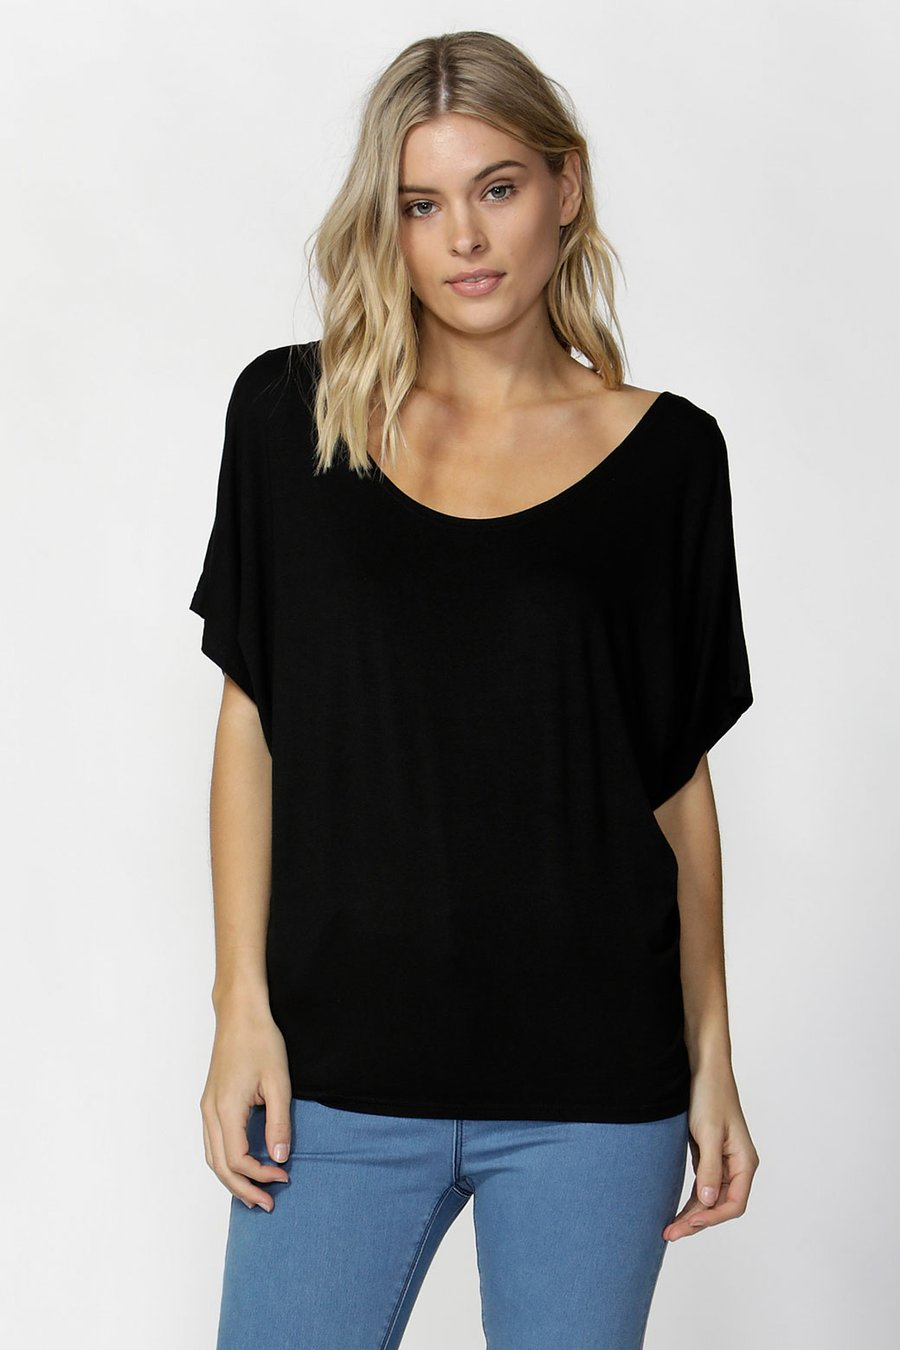 Maui Tee by Betty Basics - Black